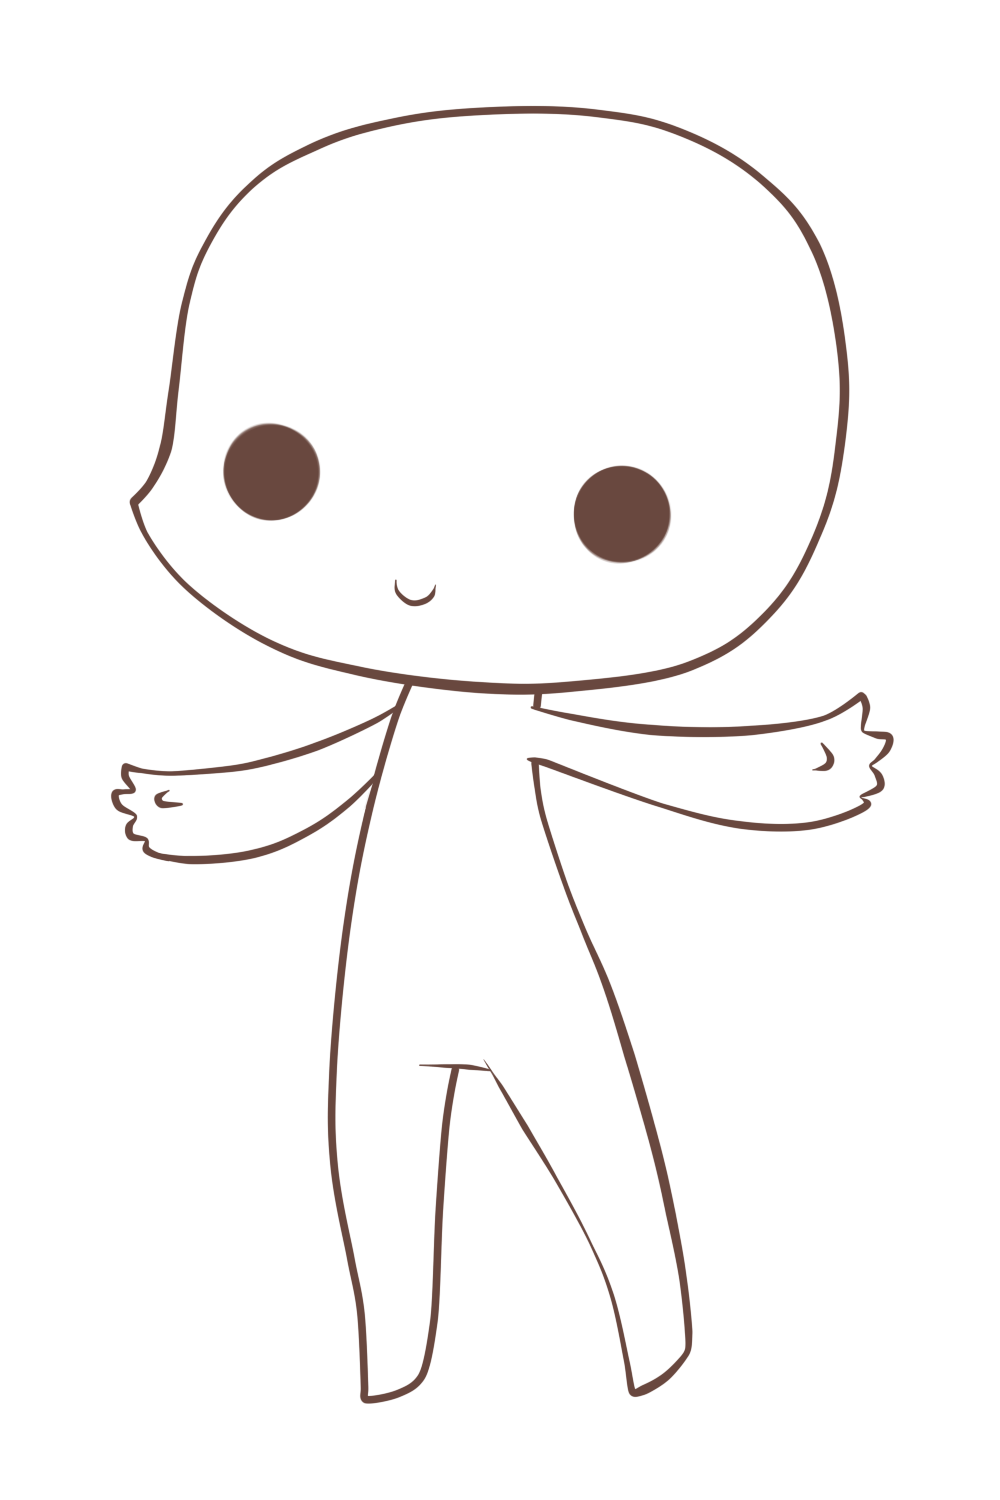 Transparent base chibi. Anime boy images by